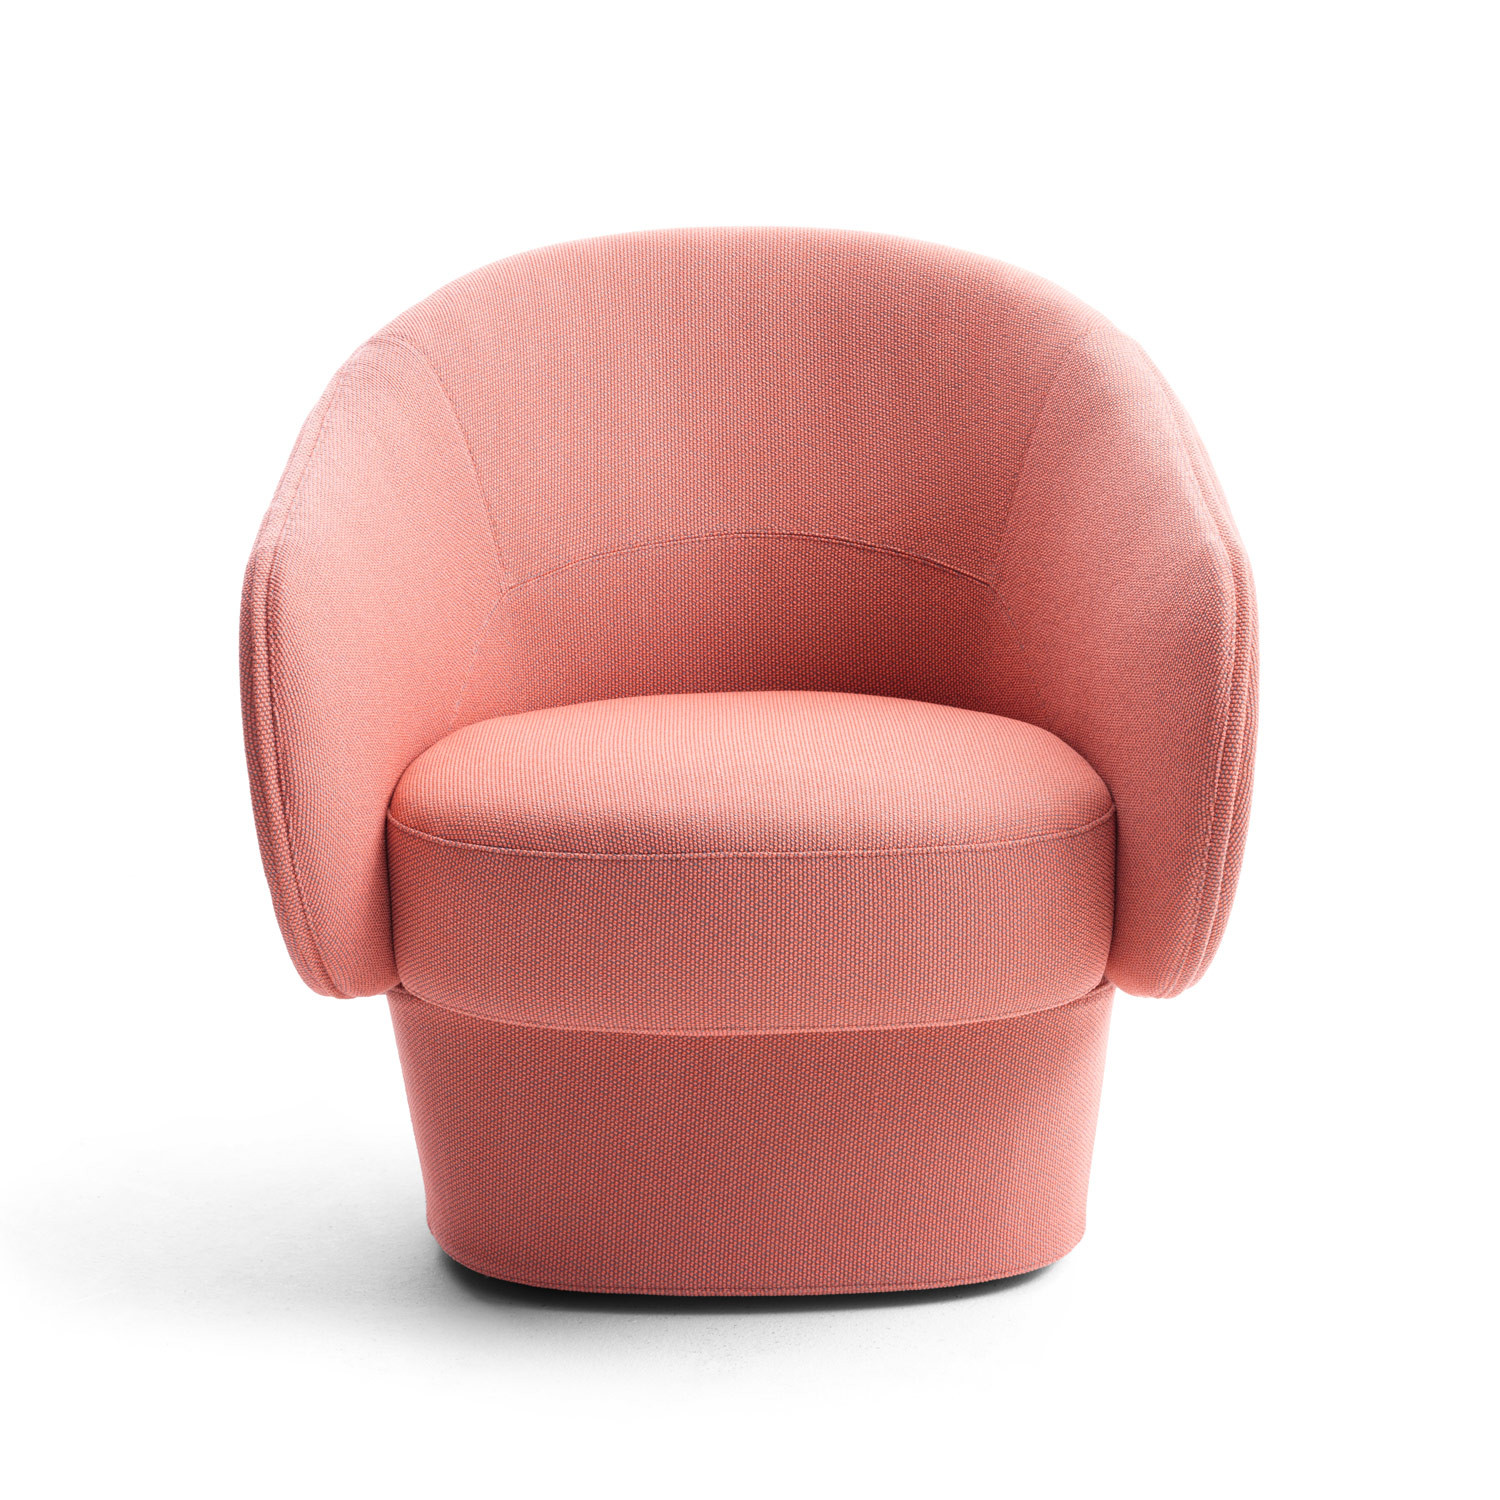 Roc Easy Chair Front View